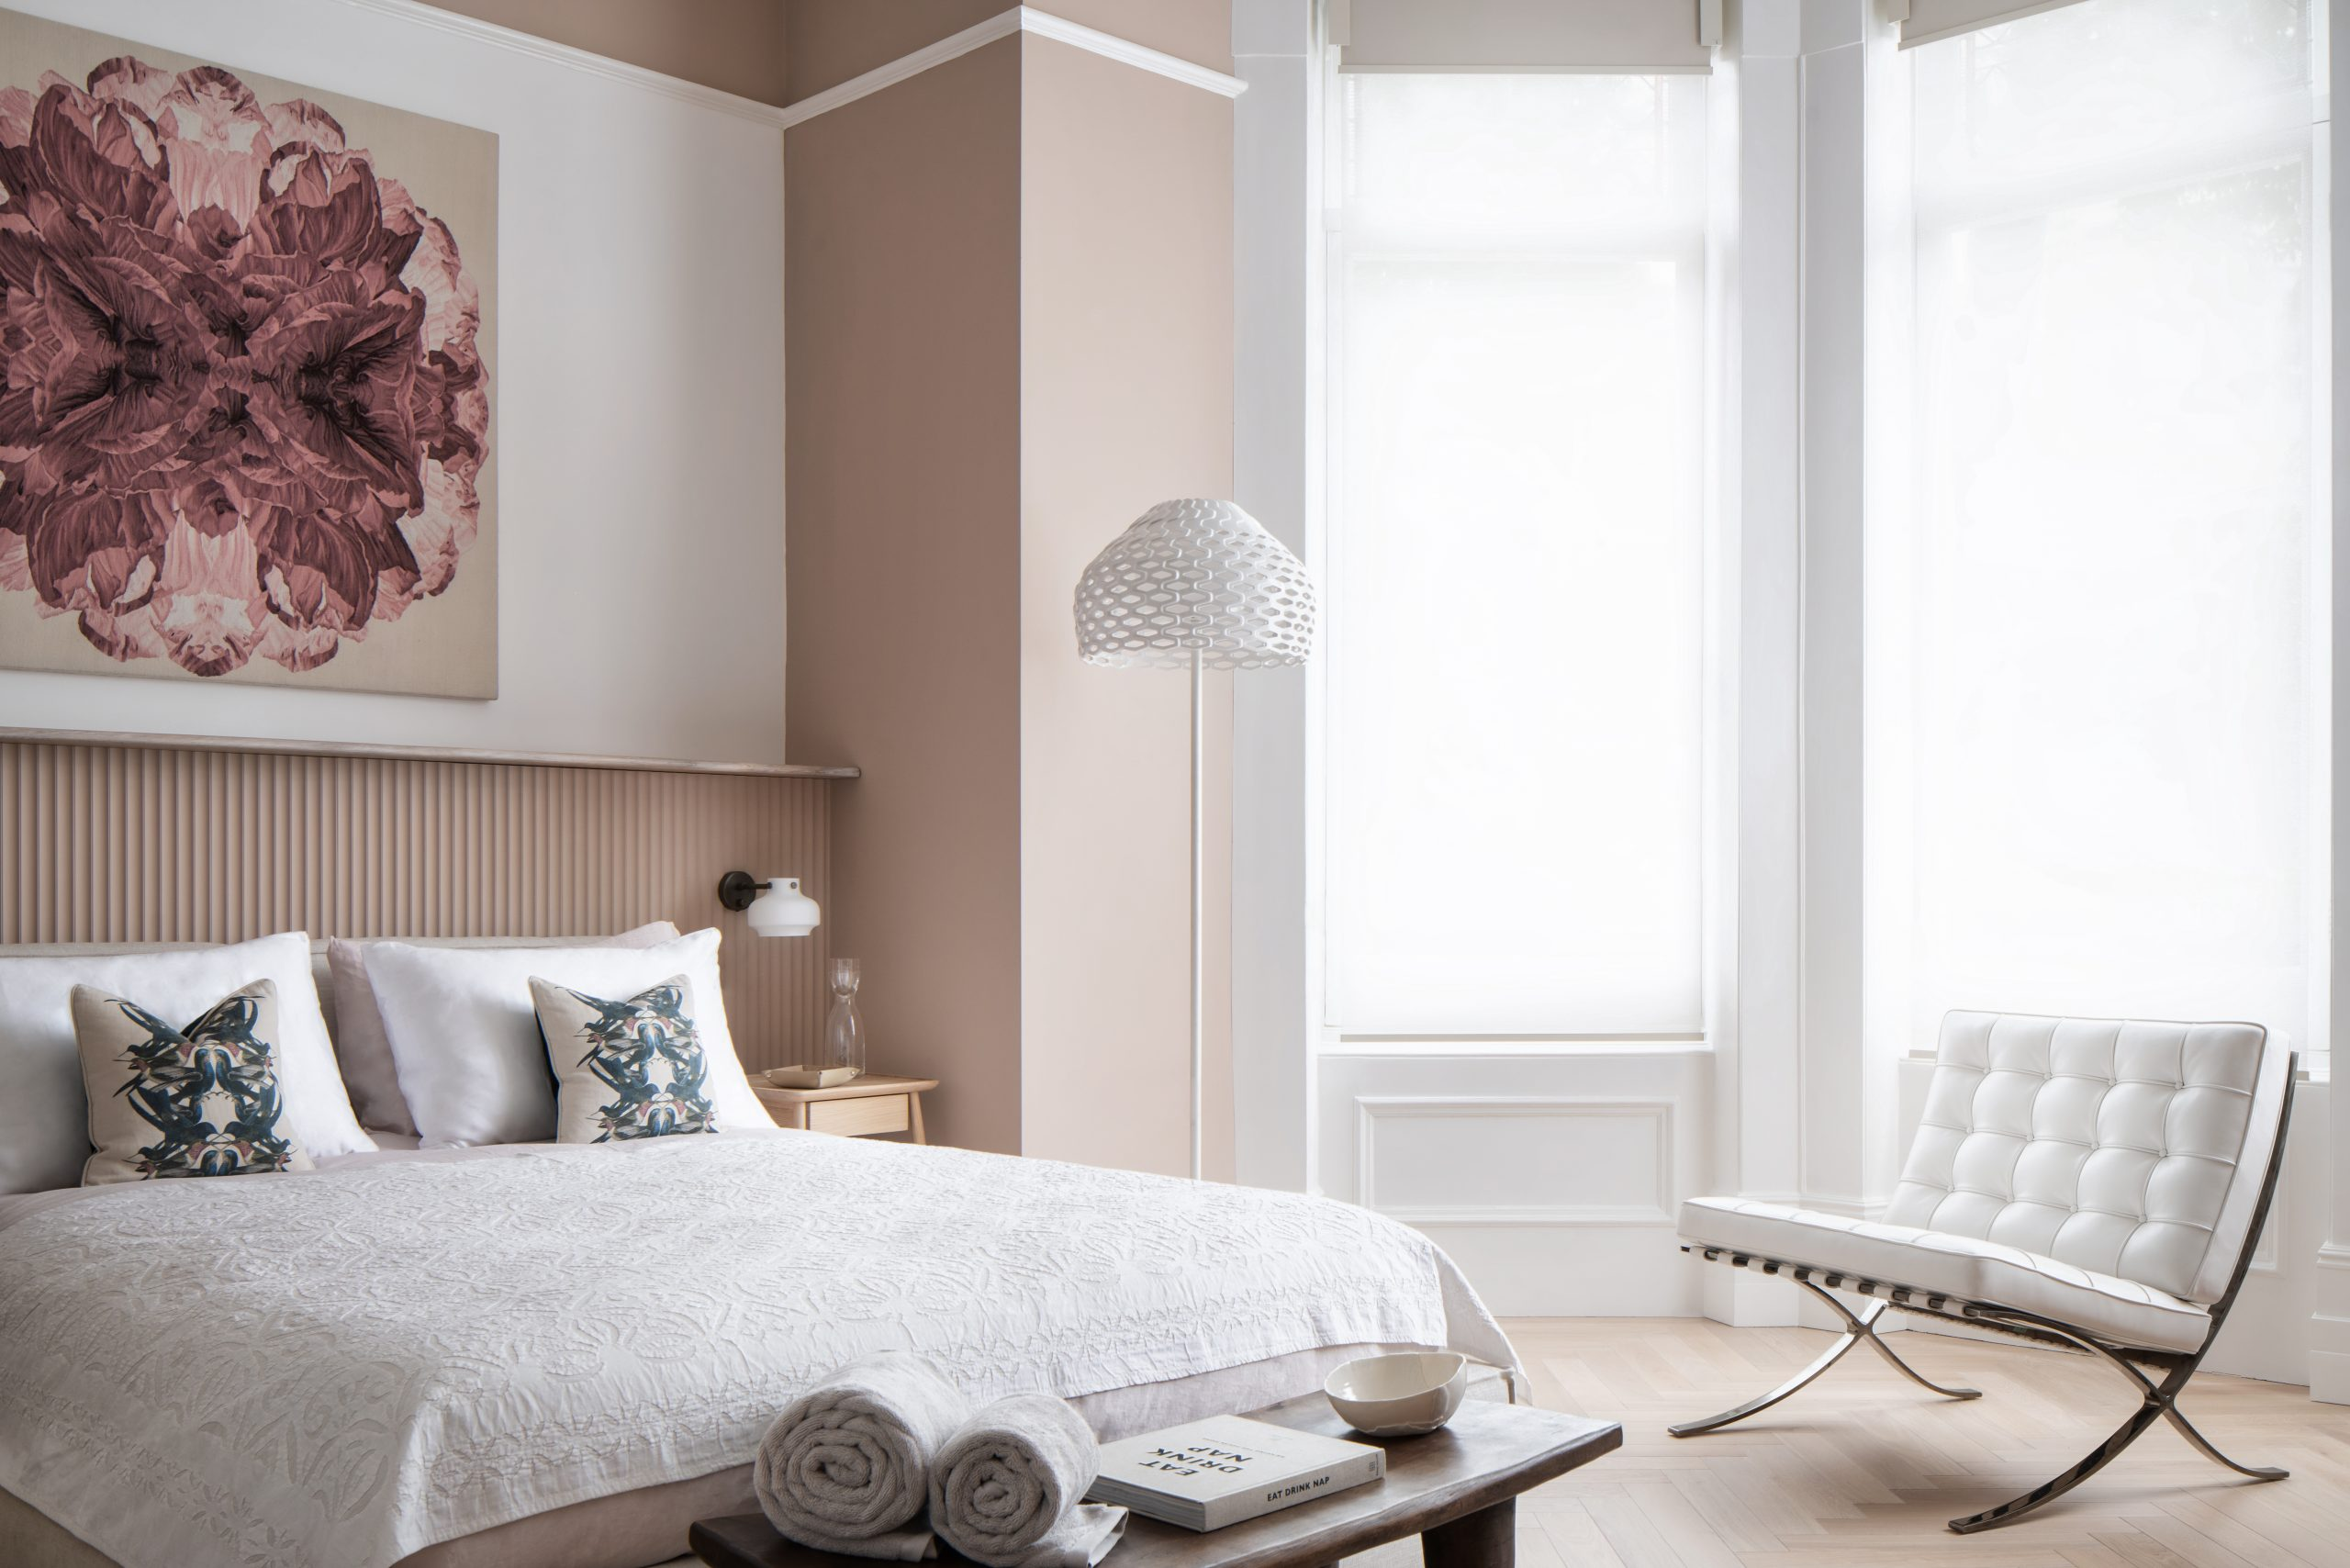 Interior Designer in North London - Belsize Park, Hampstead, Primrose Hill and Camden. Click to view the interior design portfolio from NW3 Interiors.